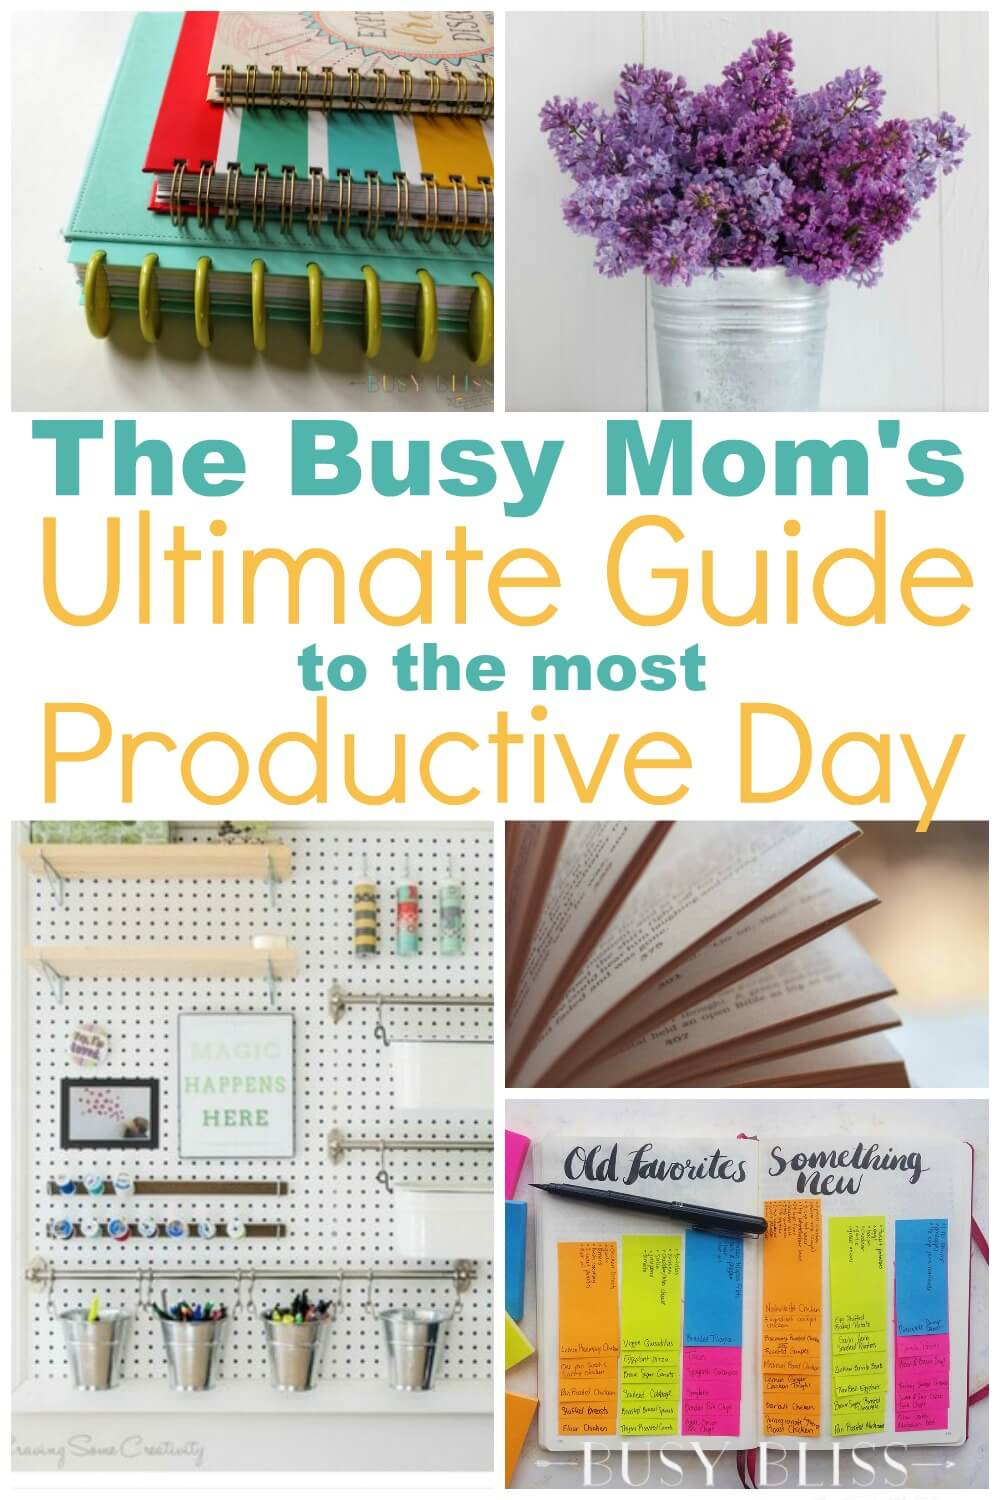 The Busy Mom\'s Ultimate Guide to the Most Productive Day - Busy Bliss